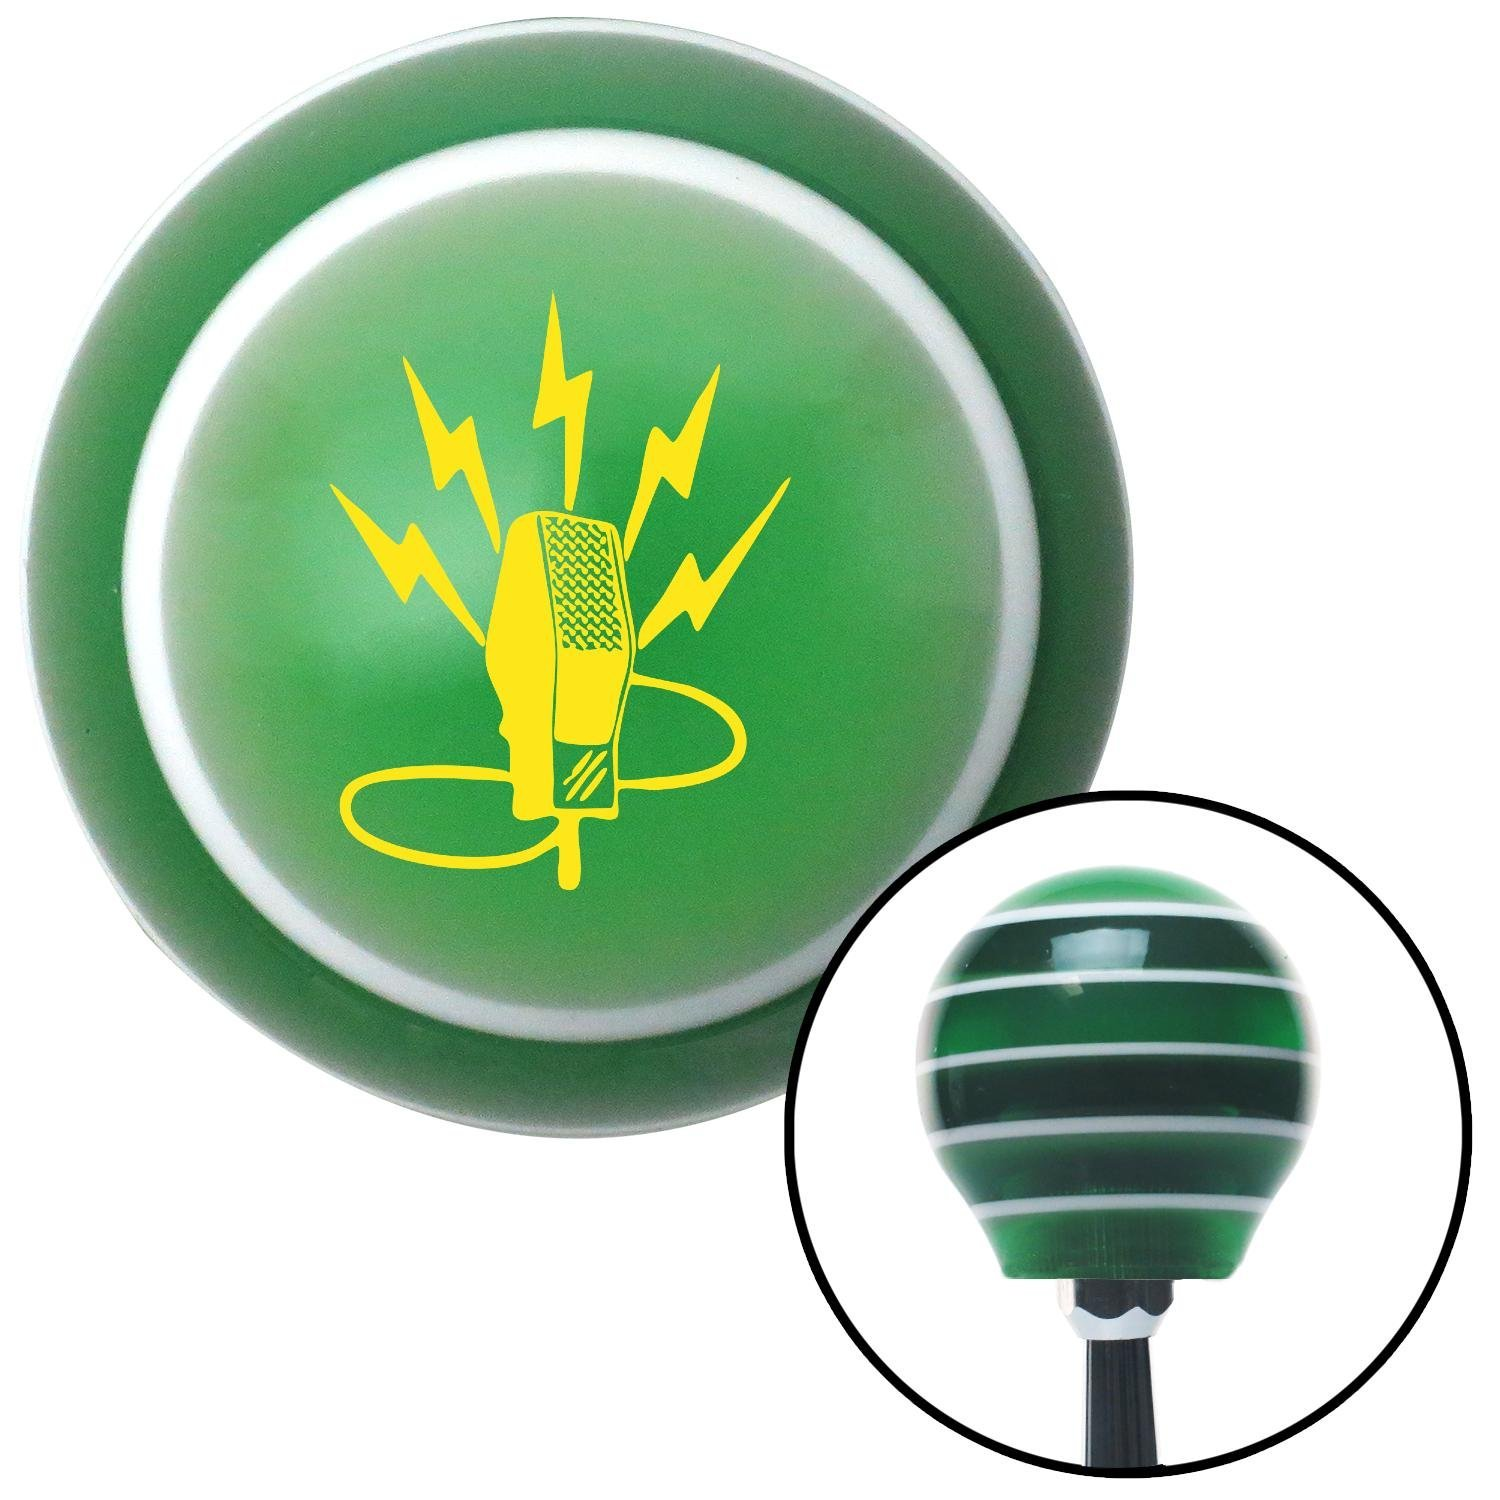 Yellow Microphone Energy American Shifter 125529 Green Stripe Shift Knob with M16 x 1.5 Insert